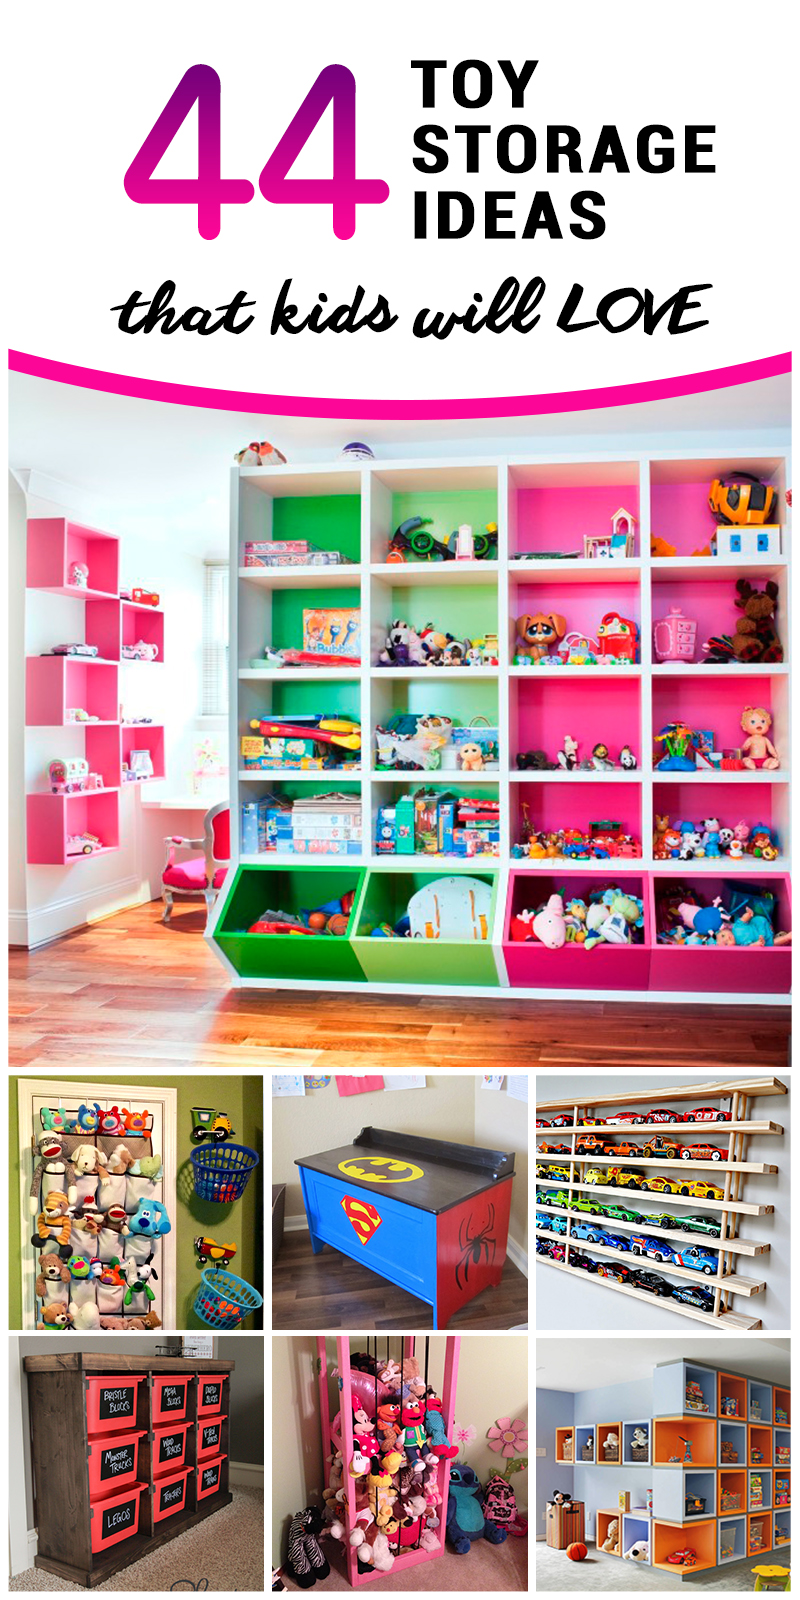 44 Toy Storage Ideas To Contain The Clutter